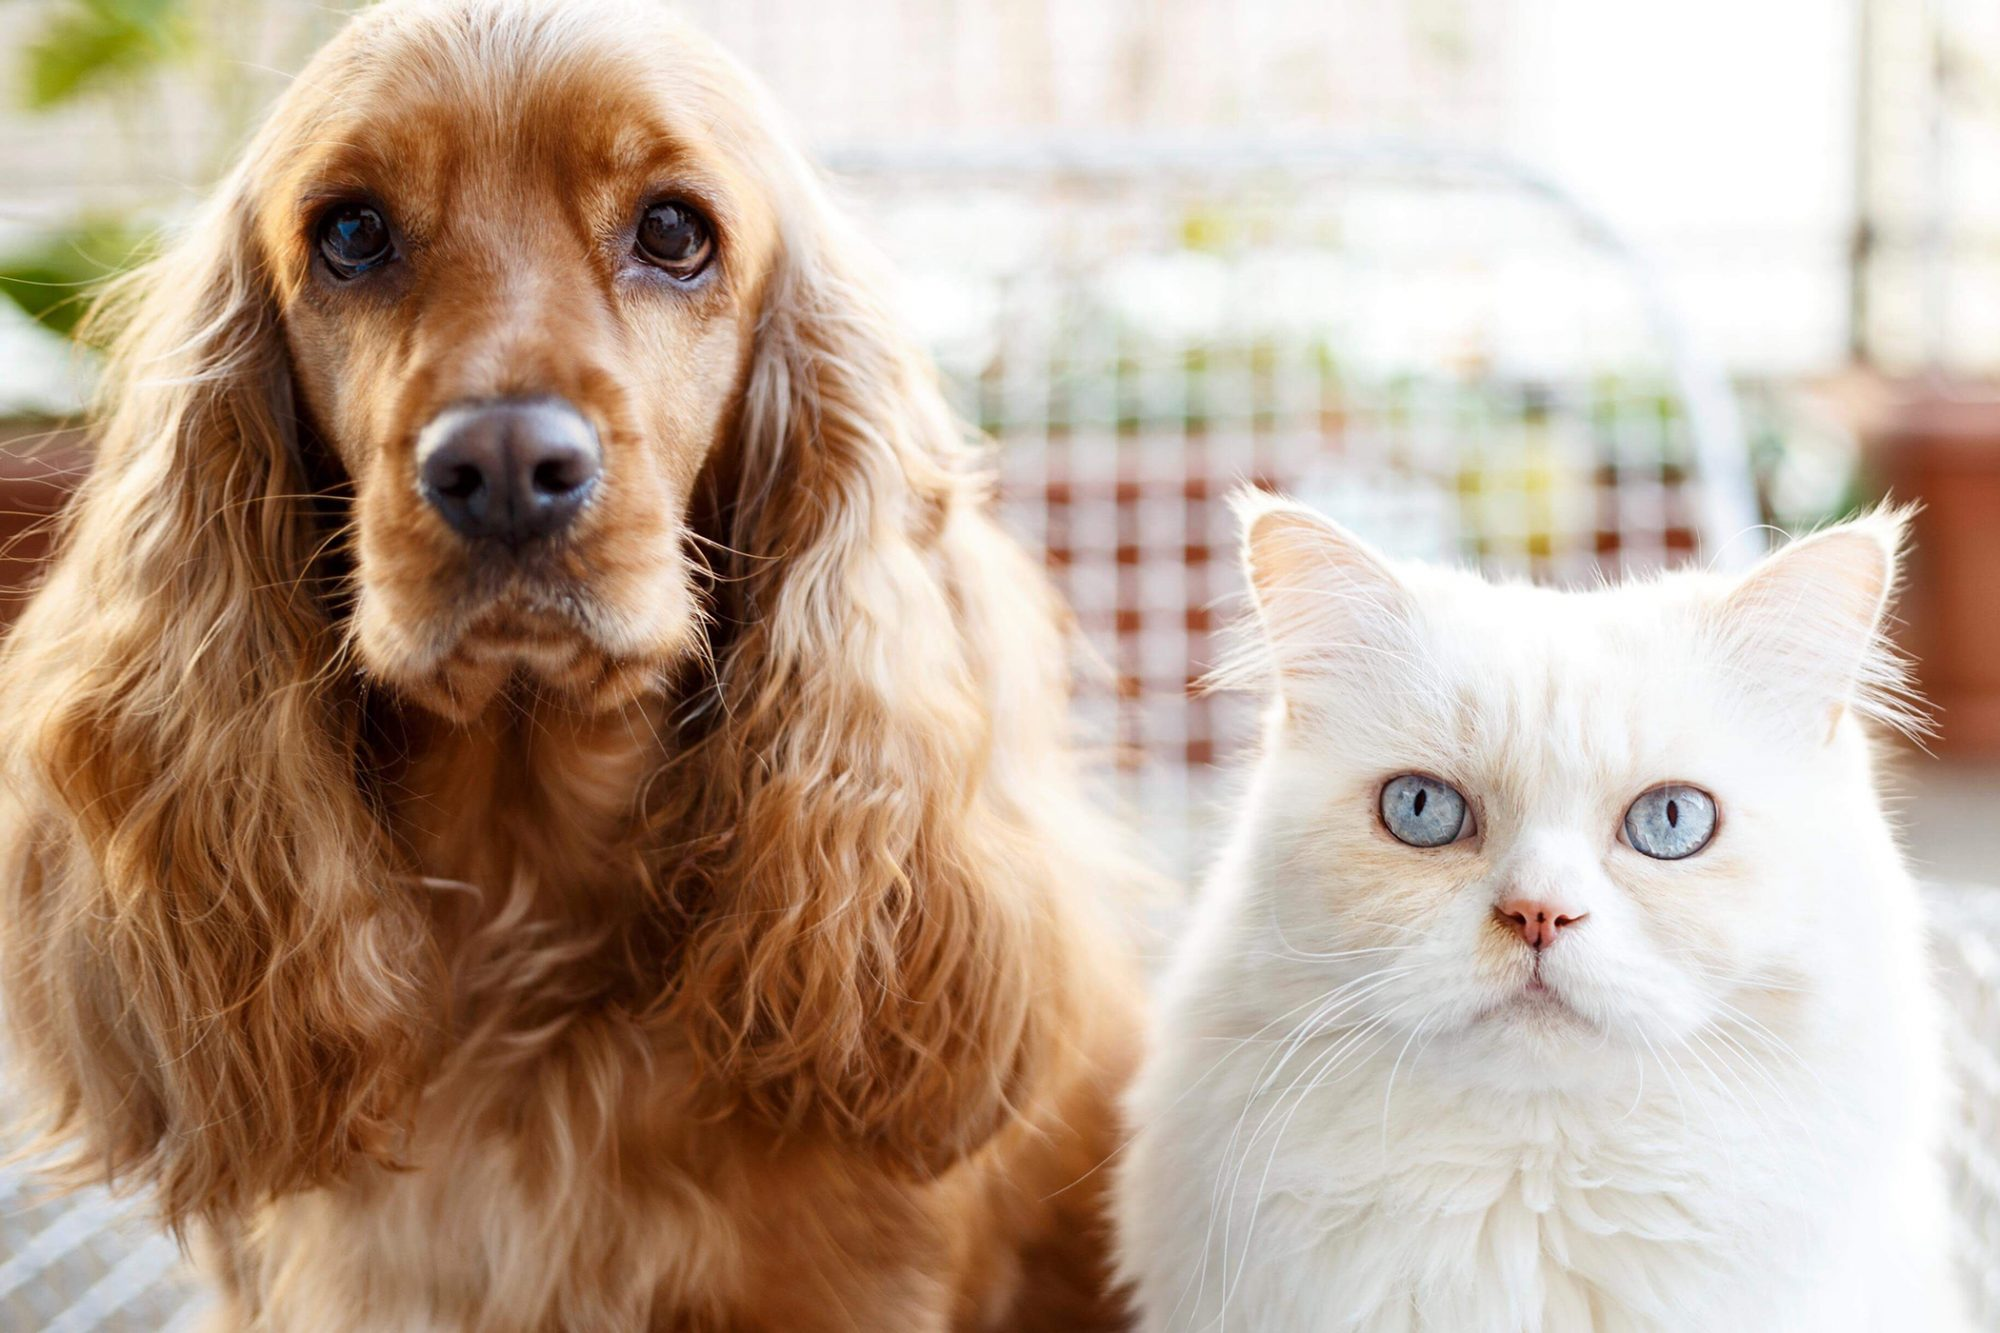 Photo of spaniel and white cat side-by-side